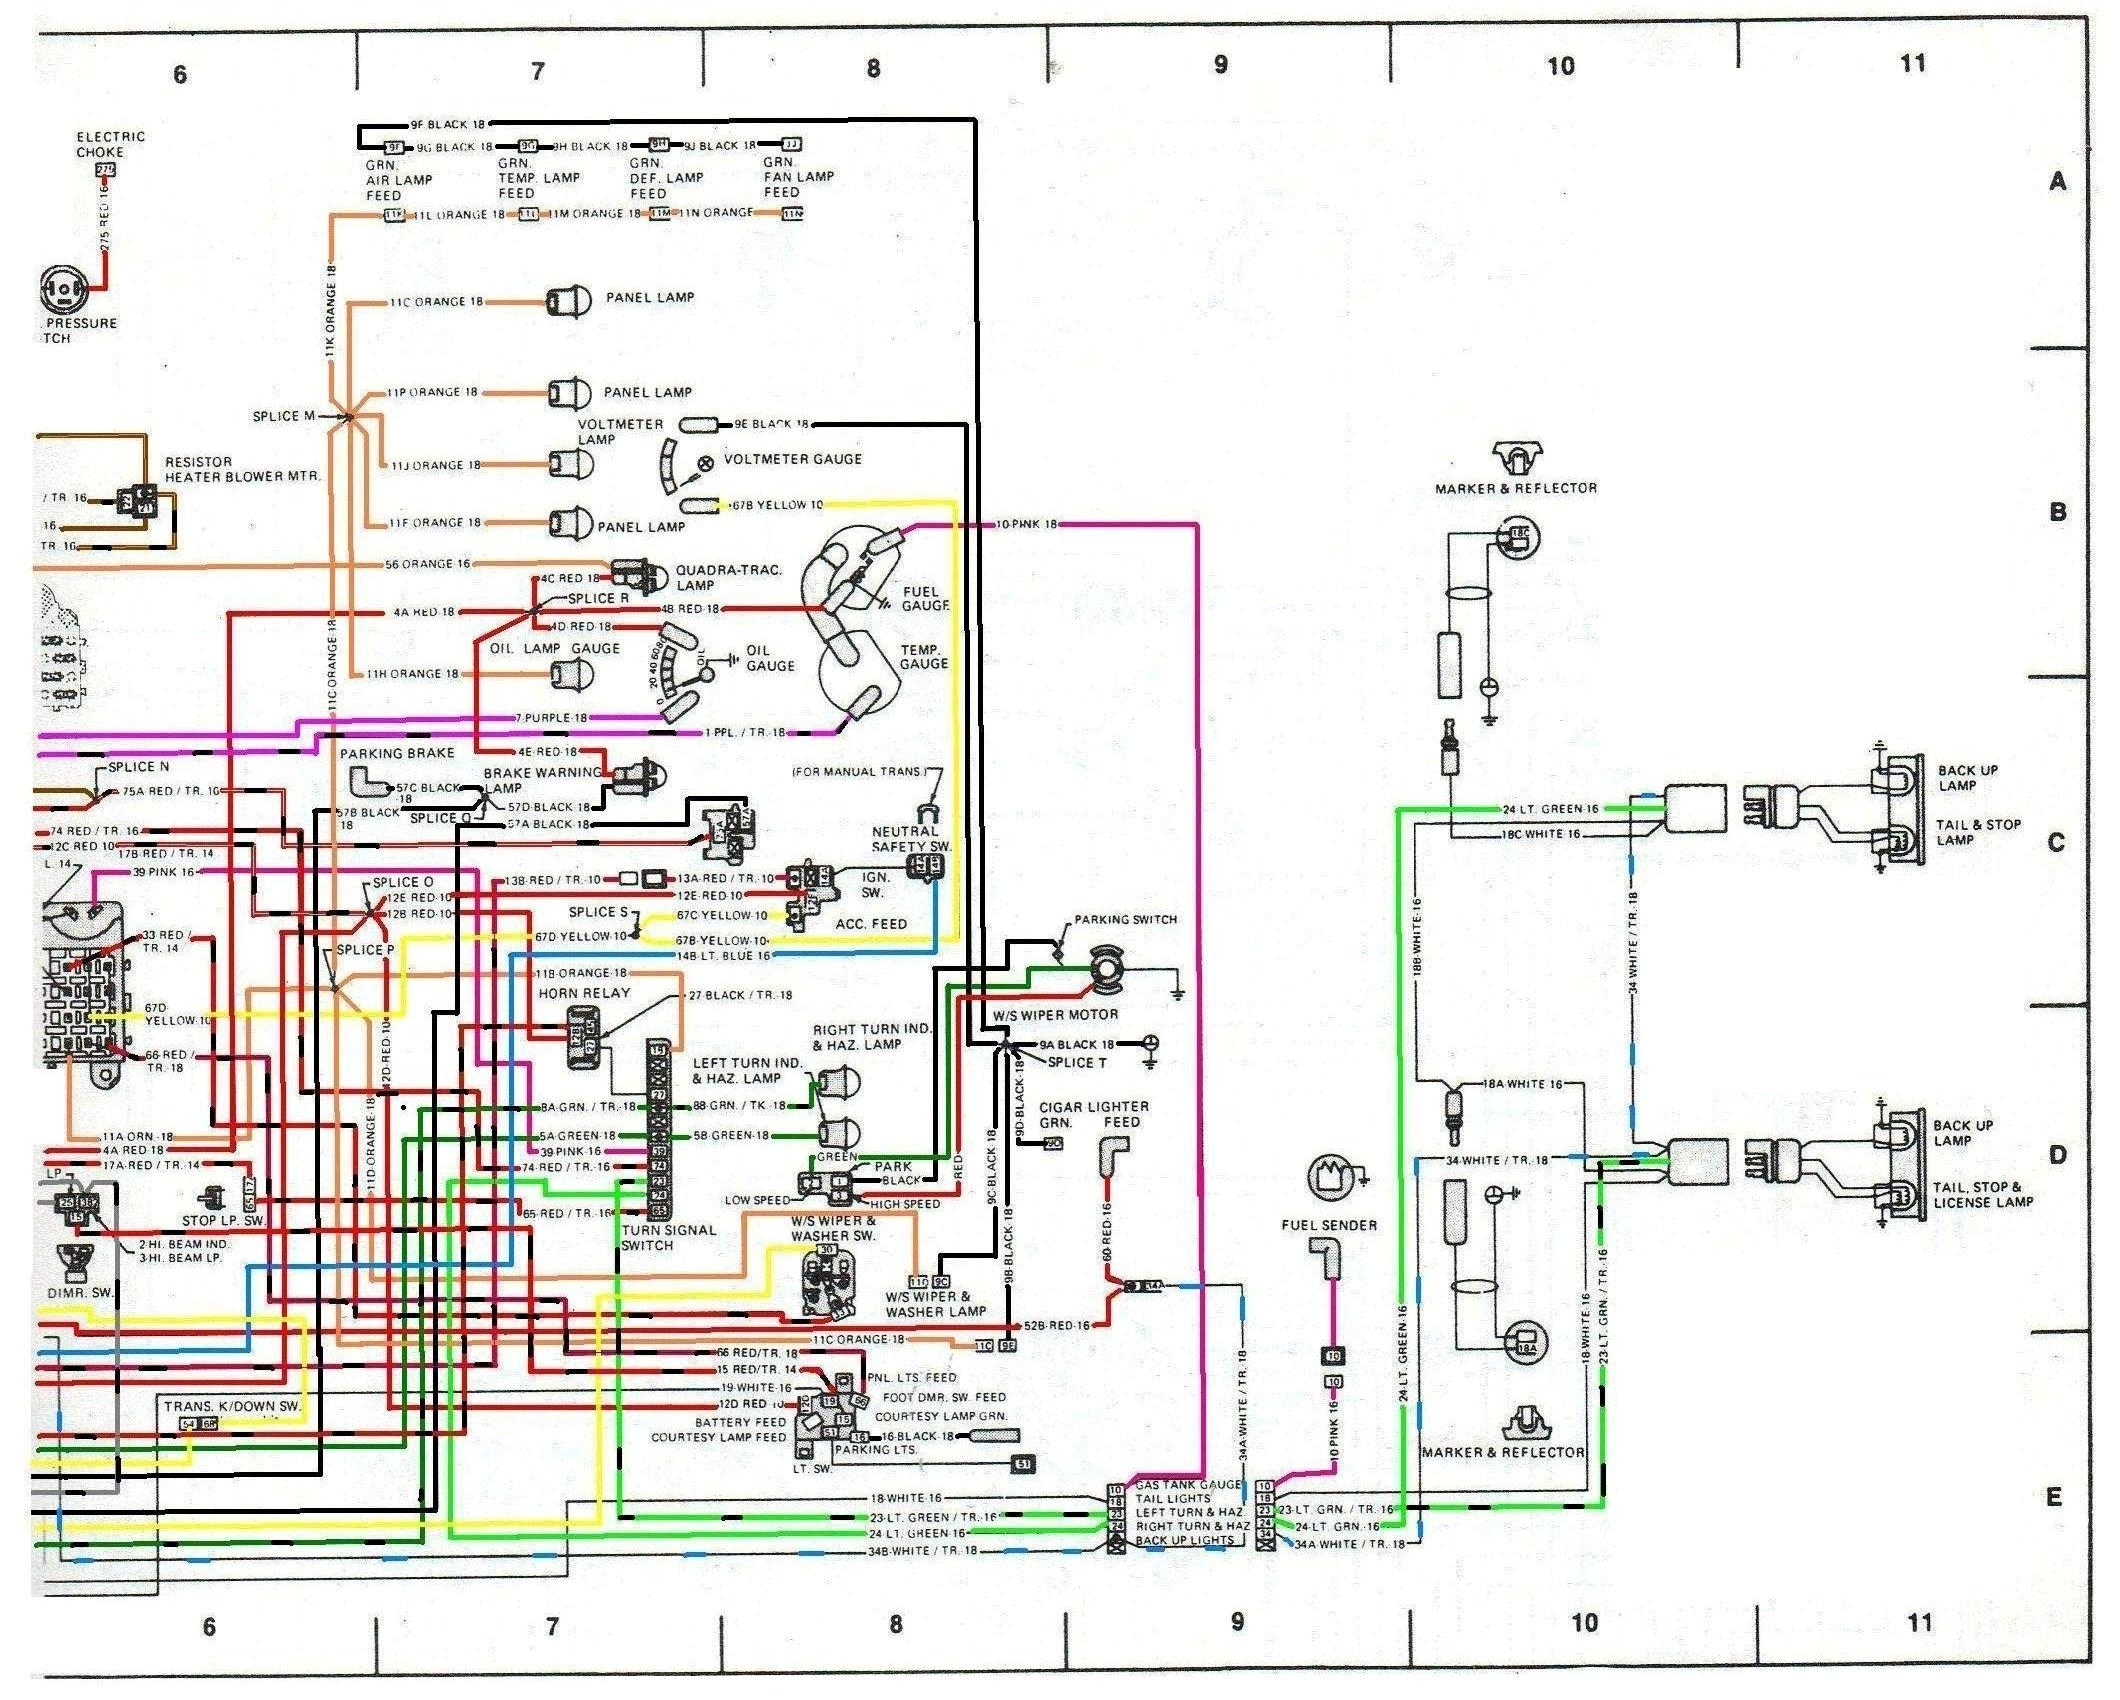 Wiring Diagram For 1976 Jeep Cj5 - Wiring Diagrams on ford econoline van wiring diagram, ford thunderbird wiring diagram, ford flex wiring diagram, ford crown victoria headlight switch, 1937 ford wiring diagram, ford crown victoria radio, ford crown victoria circuit, ford crown victoria workshop manual, ford aspire wiring diagram, ford crown victoria belt diagram, ford crown victoria battery, ford crown victoria coil, ford fairlane wiring diagram, 1960 ford wiring diagram, ford f-250 super duty wiring diagram, 2002 ford explorer air conditioning diagram, ford crown victoria fuel system, ford crown victoria rear suspension, ford aerostar wiring diagram, ford crown victoria clock,